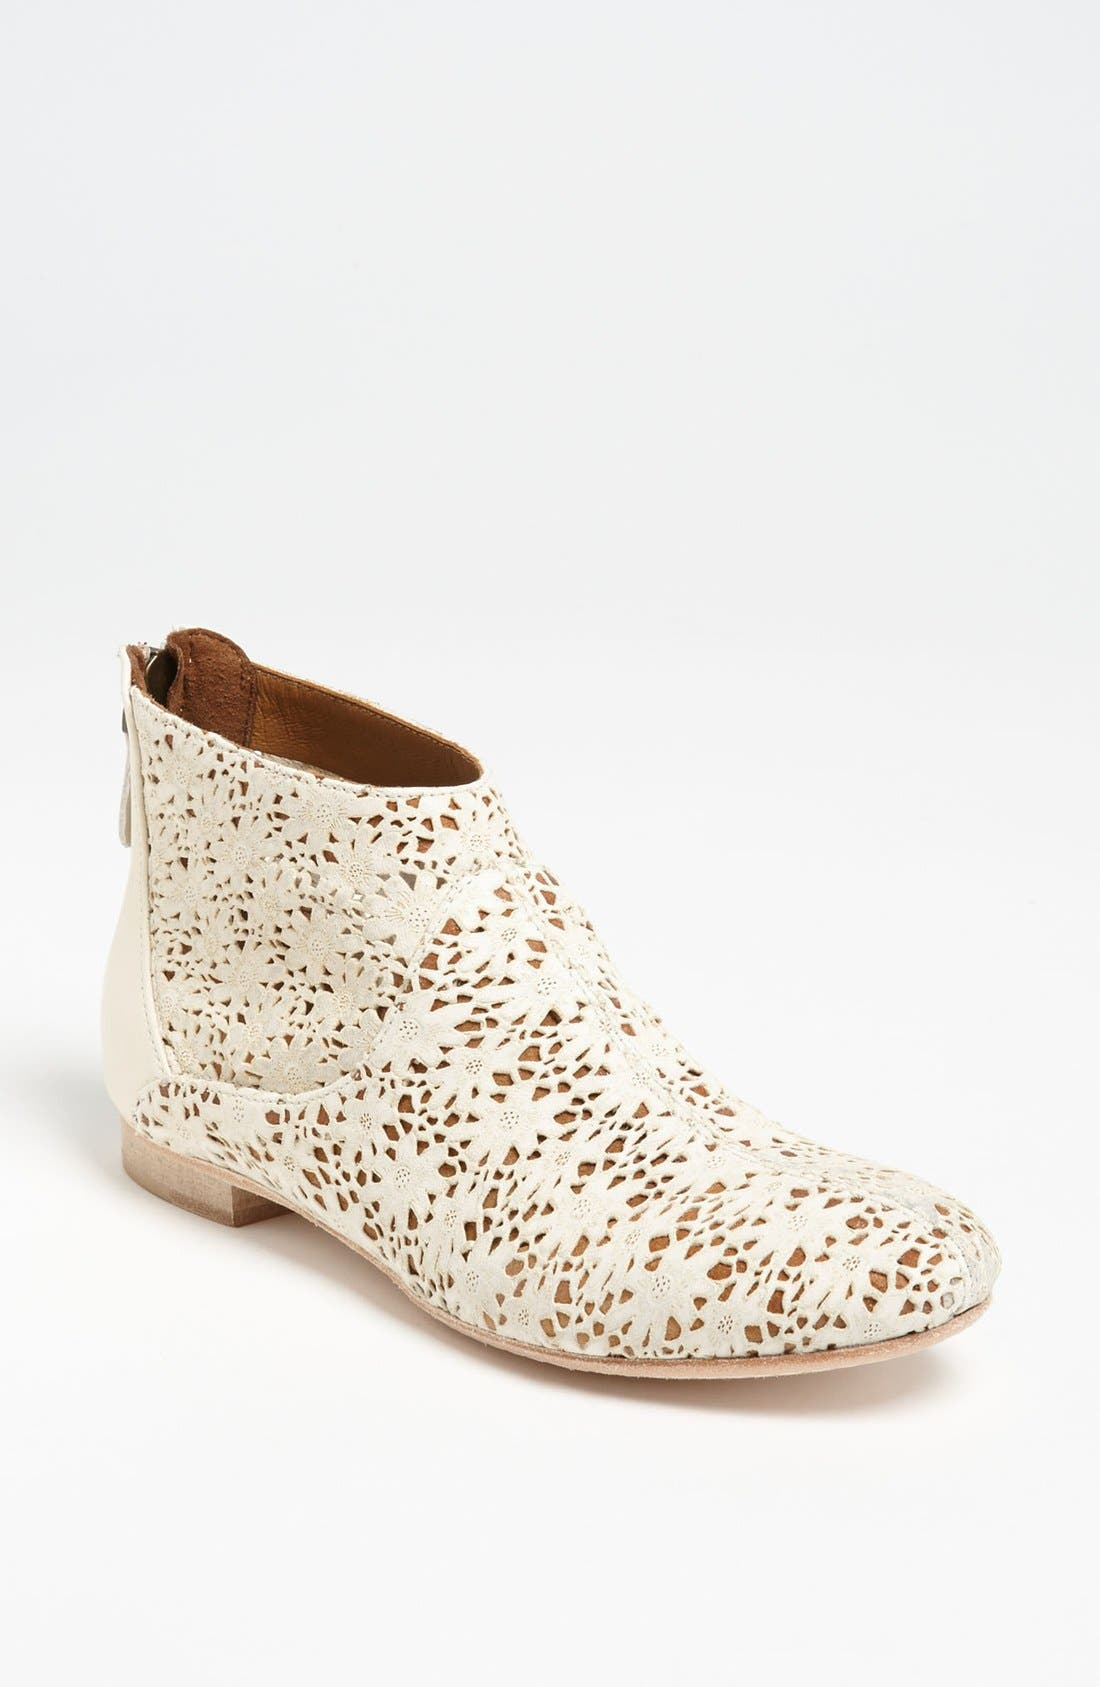 Alternate Image 1 Selected - Latitude Femme Perforated Bootie